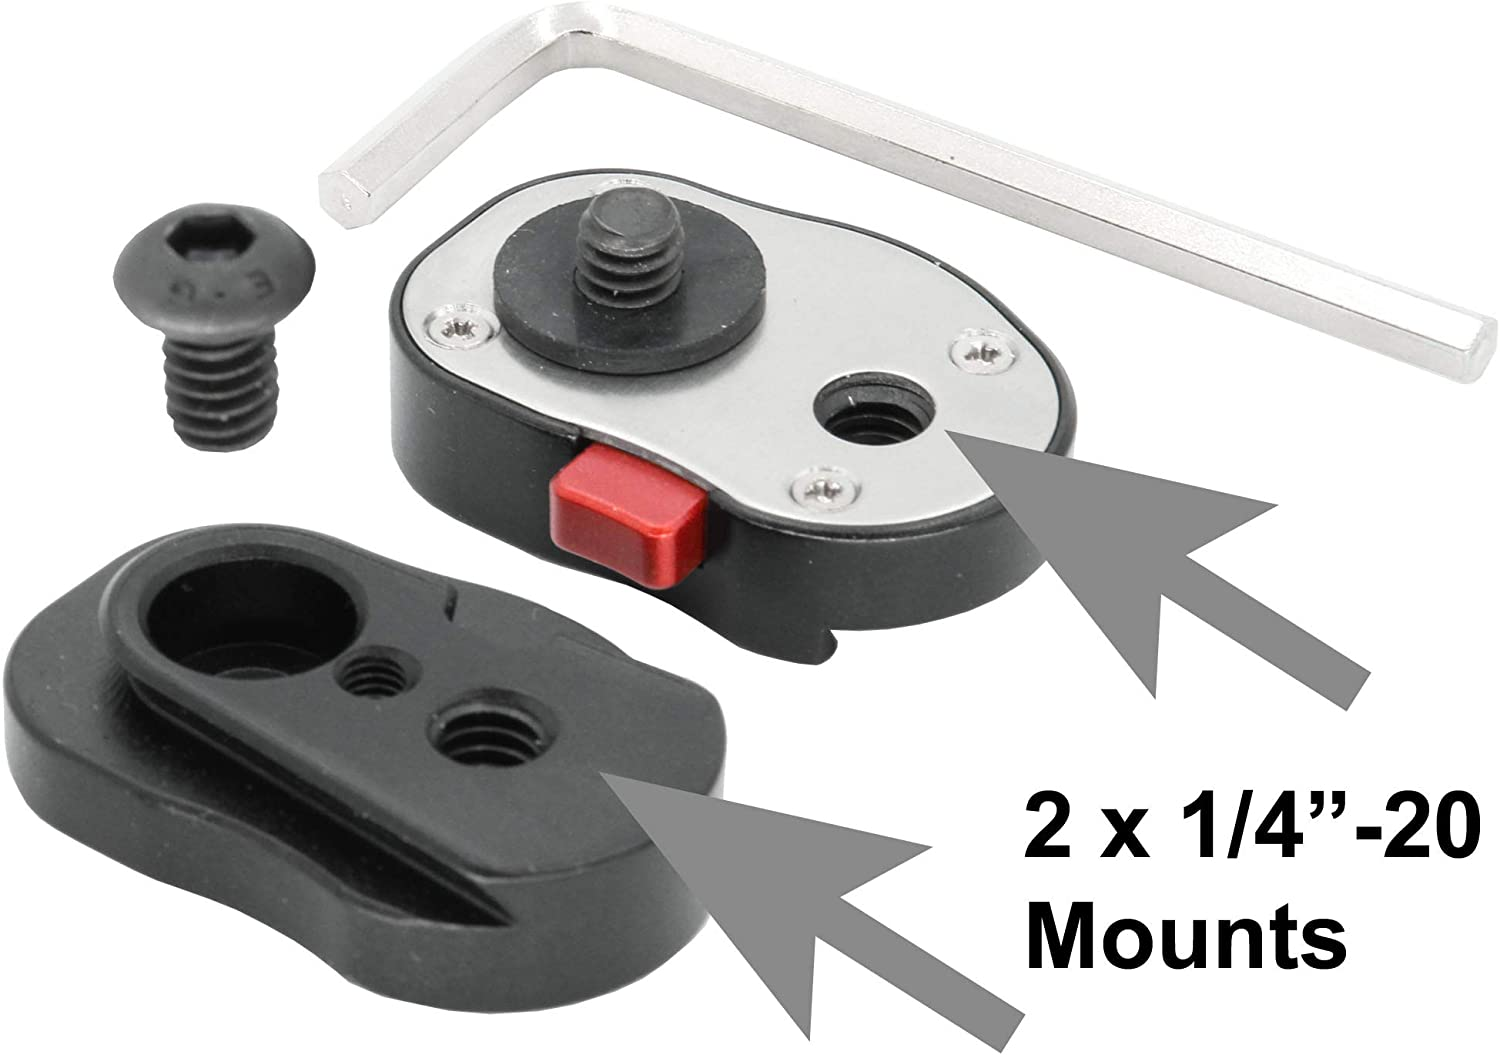 4 lb weight capacity Articulated Arm Mount Set of 3 GyroVu Professional 1//4 Mini Quick Release Plate System with Self Locking Mechanism for any Tripod